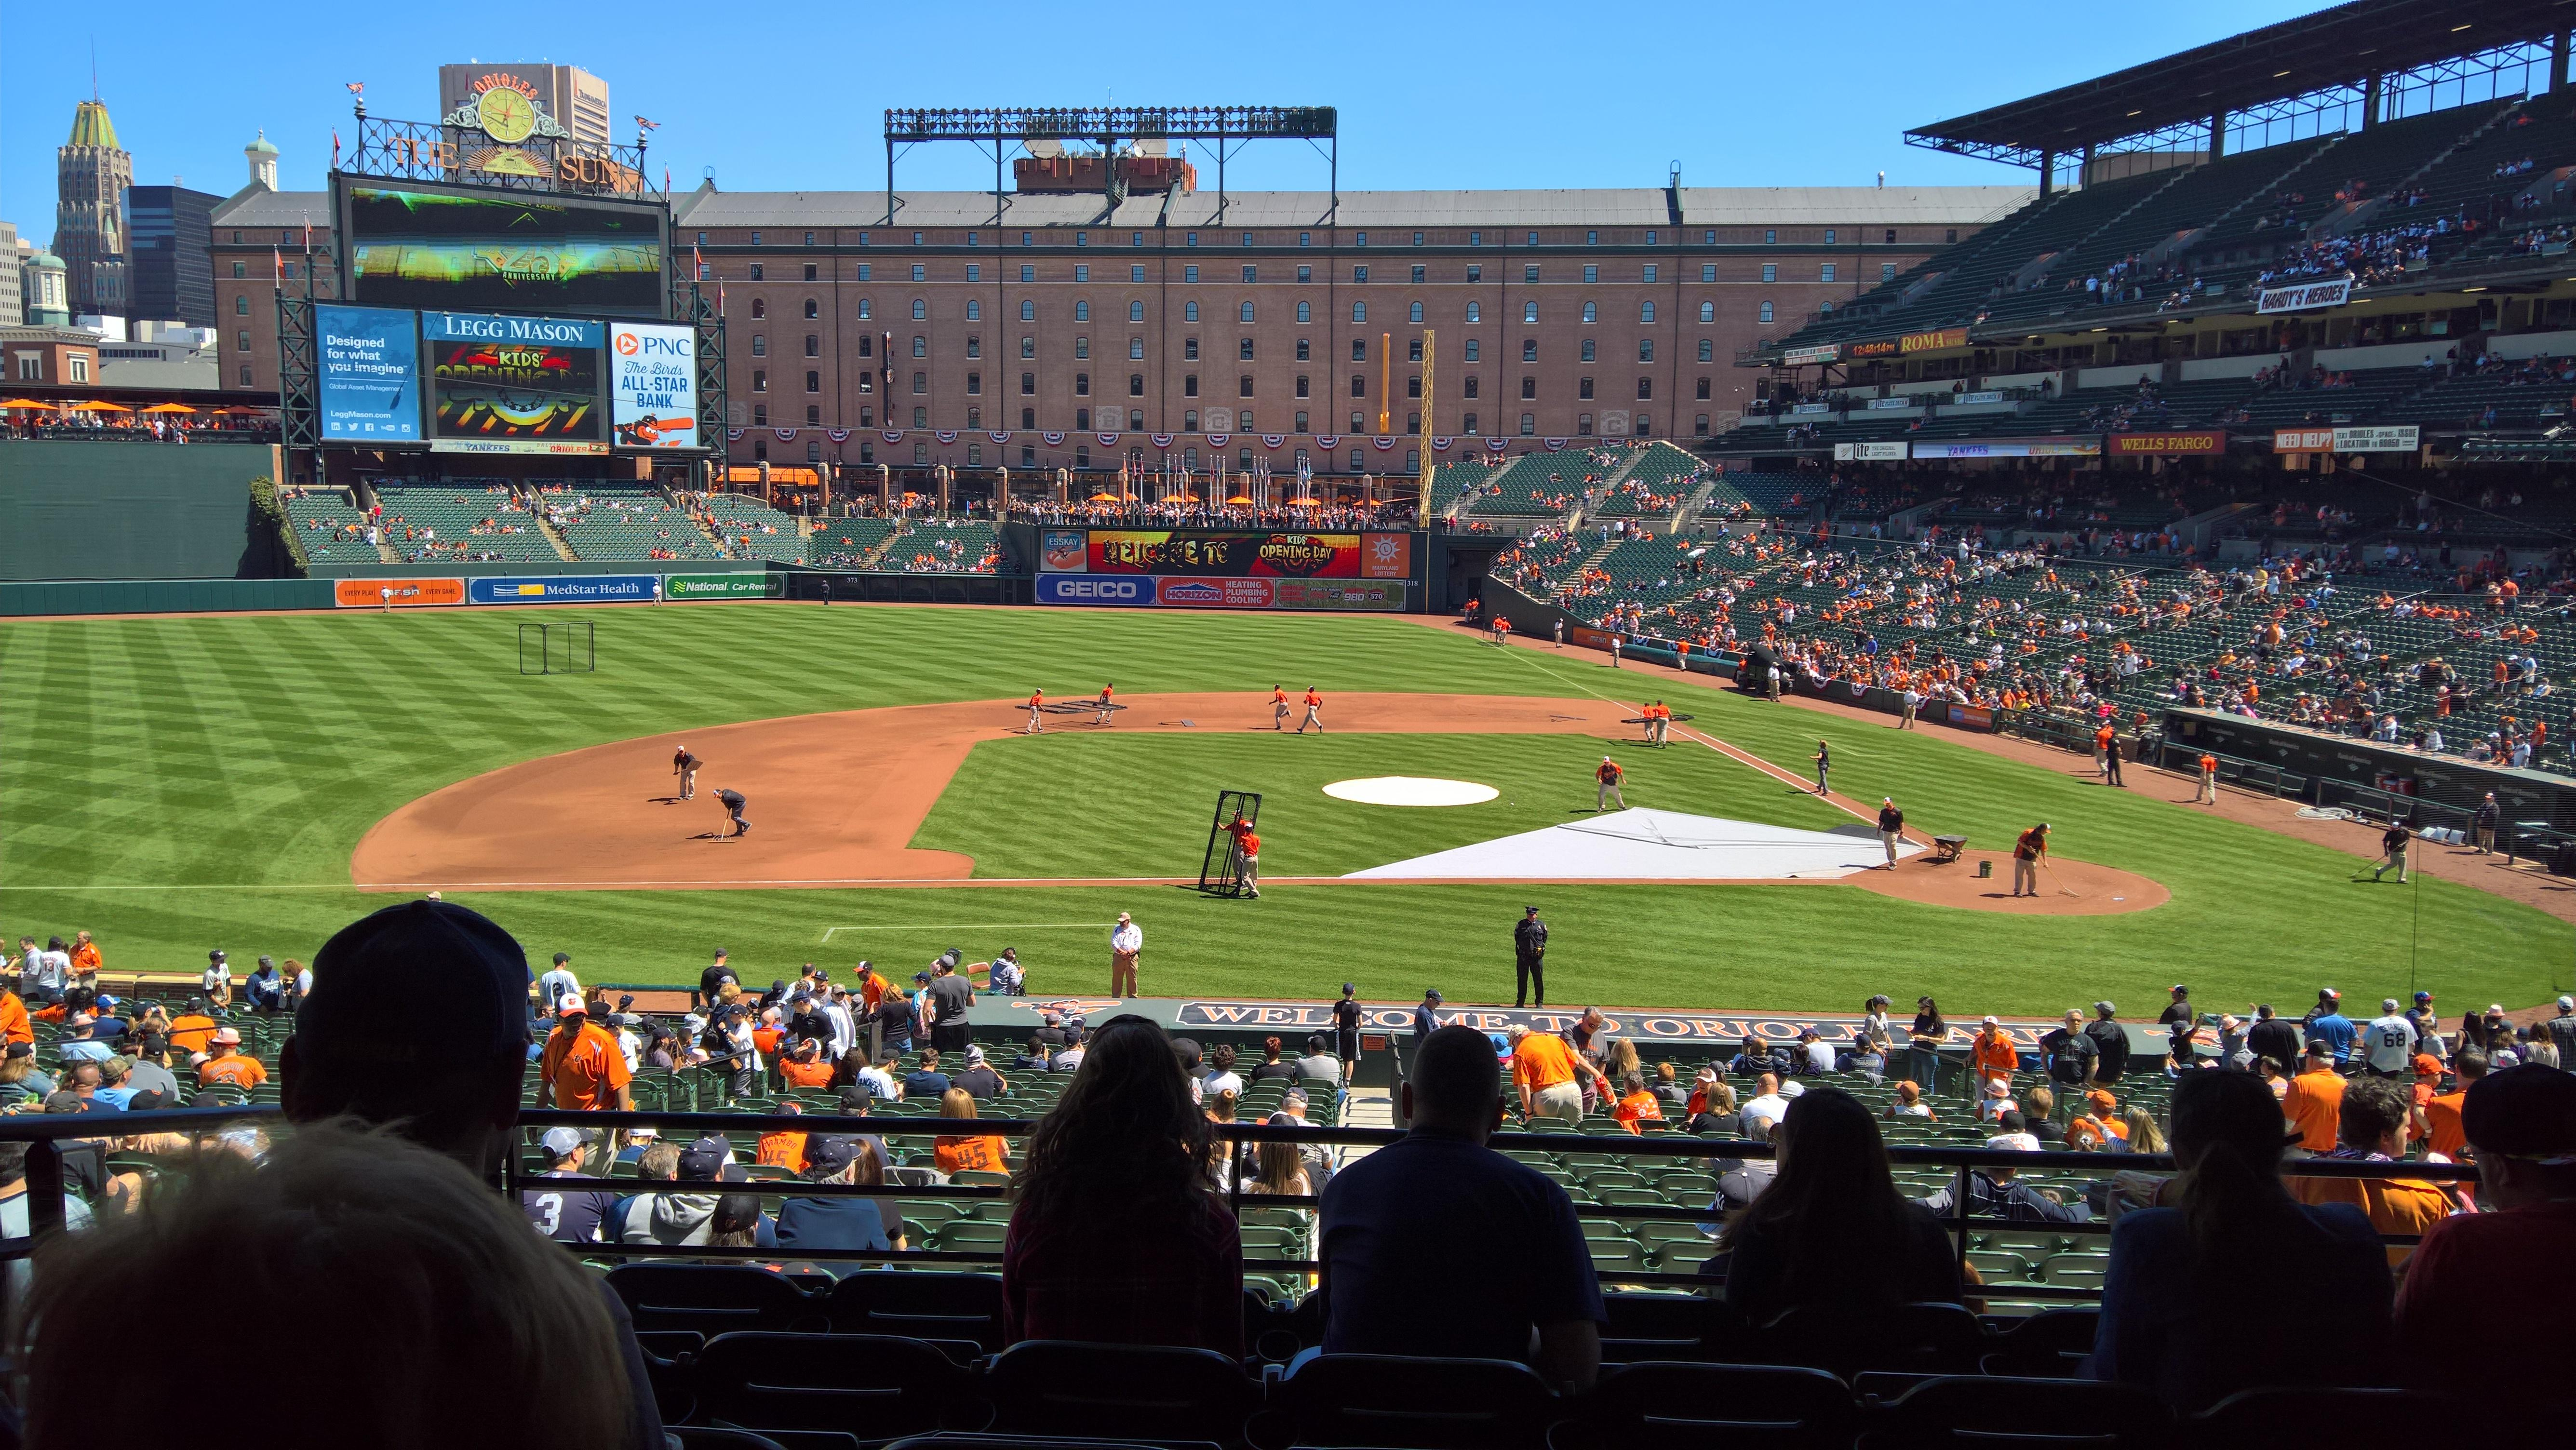 Oriole Park at Camden Yards Section 49 Row 6 Seat 18